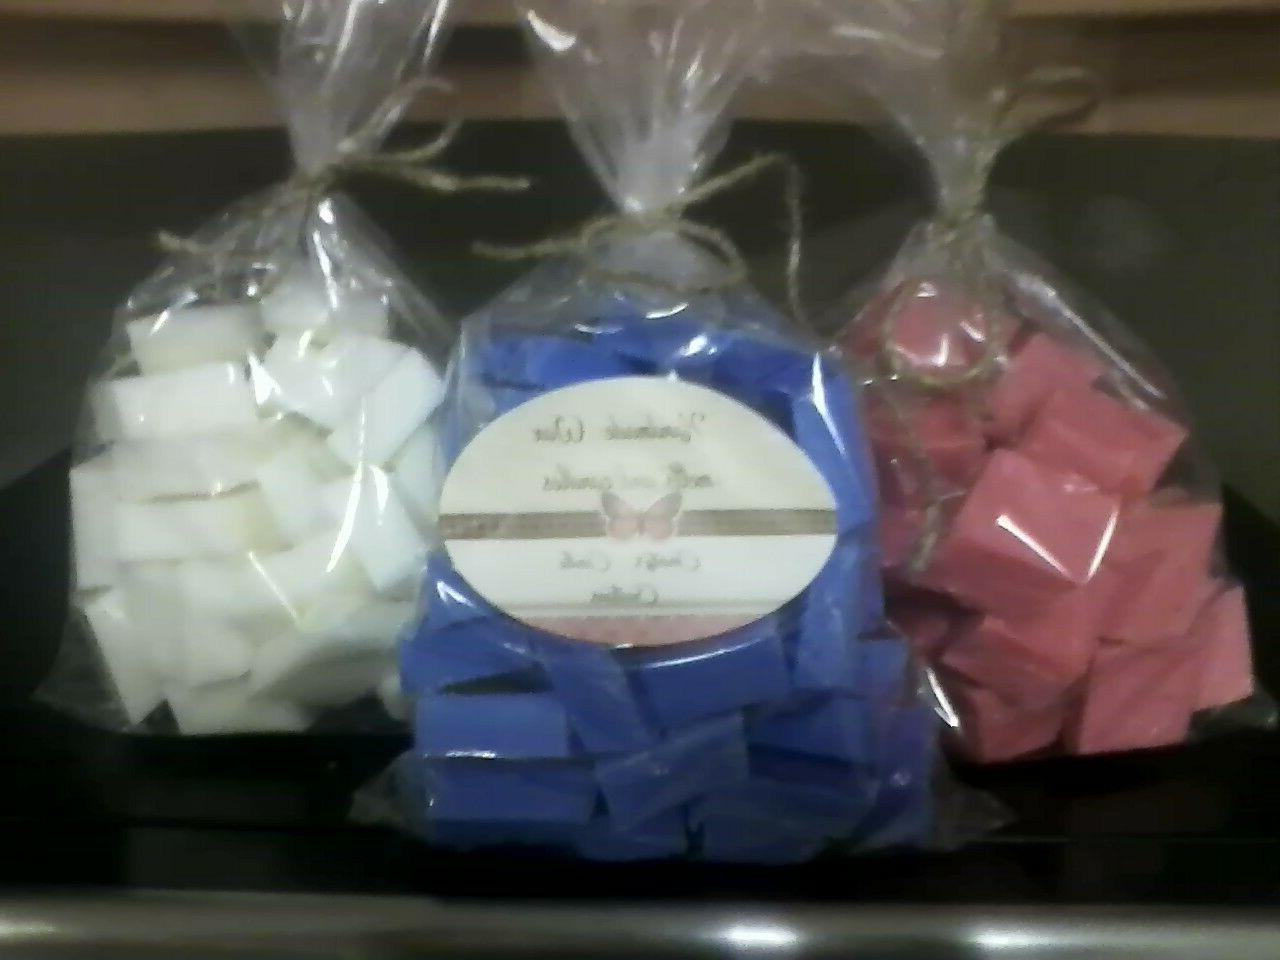 6 oz. Wax melts. Super Scented. Double size of regular cubes